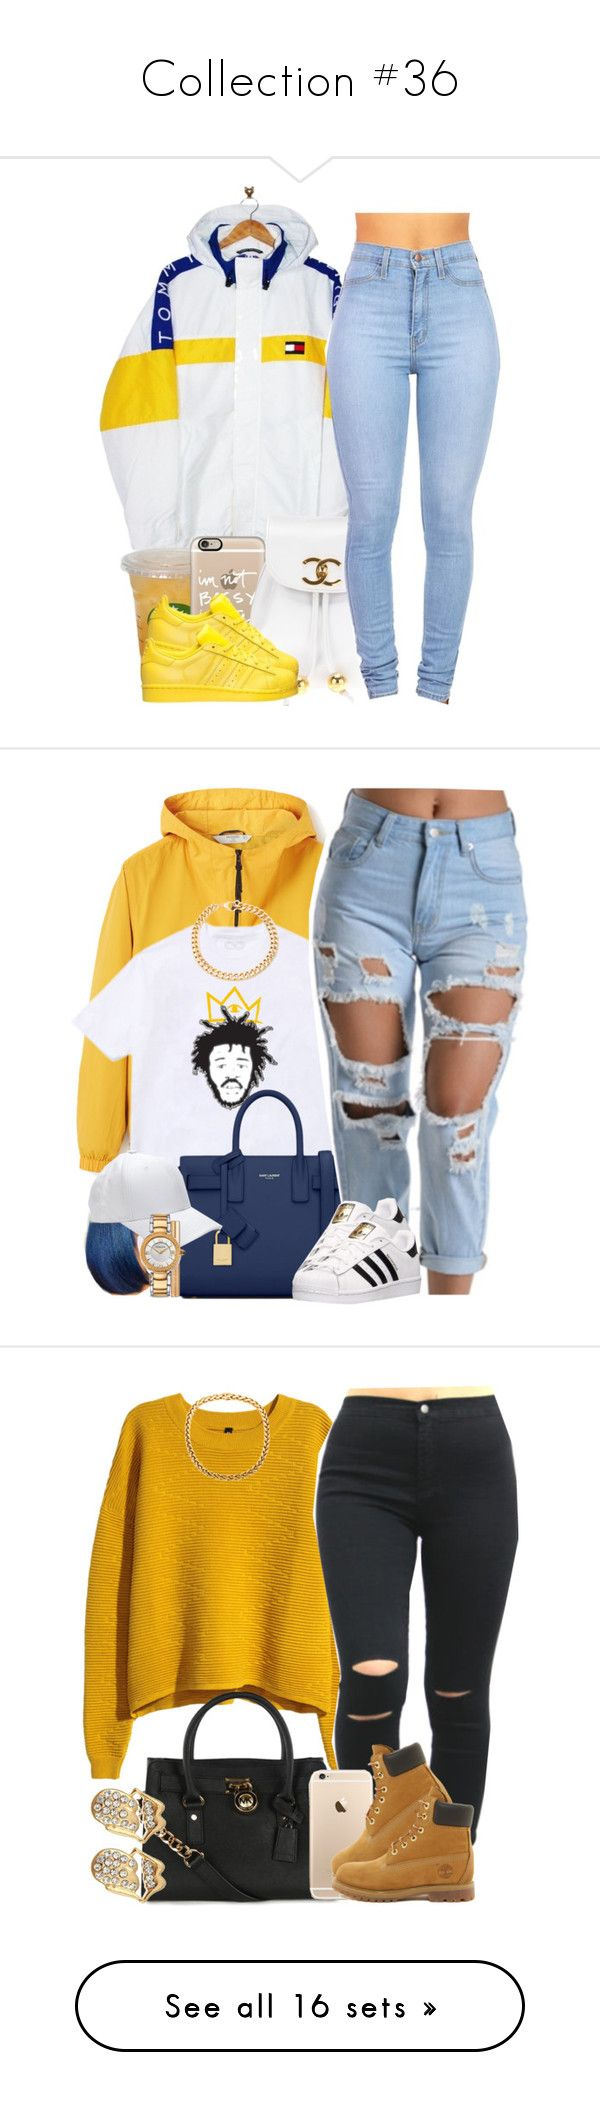 """Collection #36"" by liyahschwagg143 ❤ liked on Polyvore featuring art, MANGO, Yves Saint Laurent, Versace, Alessandra Rich, adidas, H&M, Michael Kors, Timberland and Boohoo"